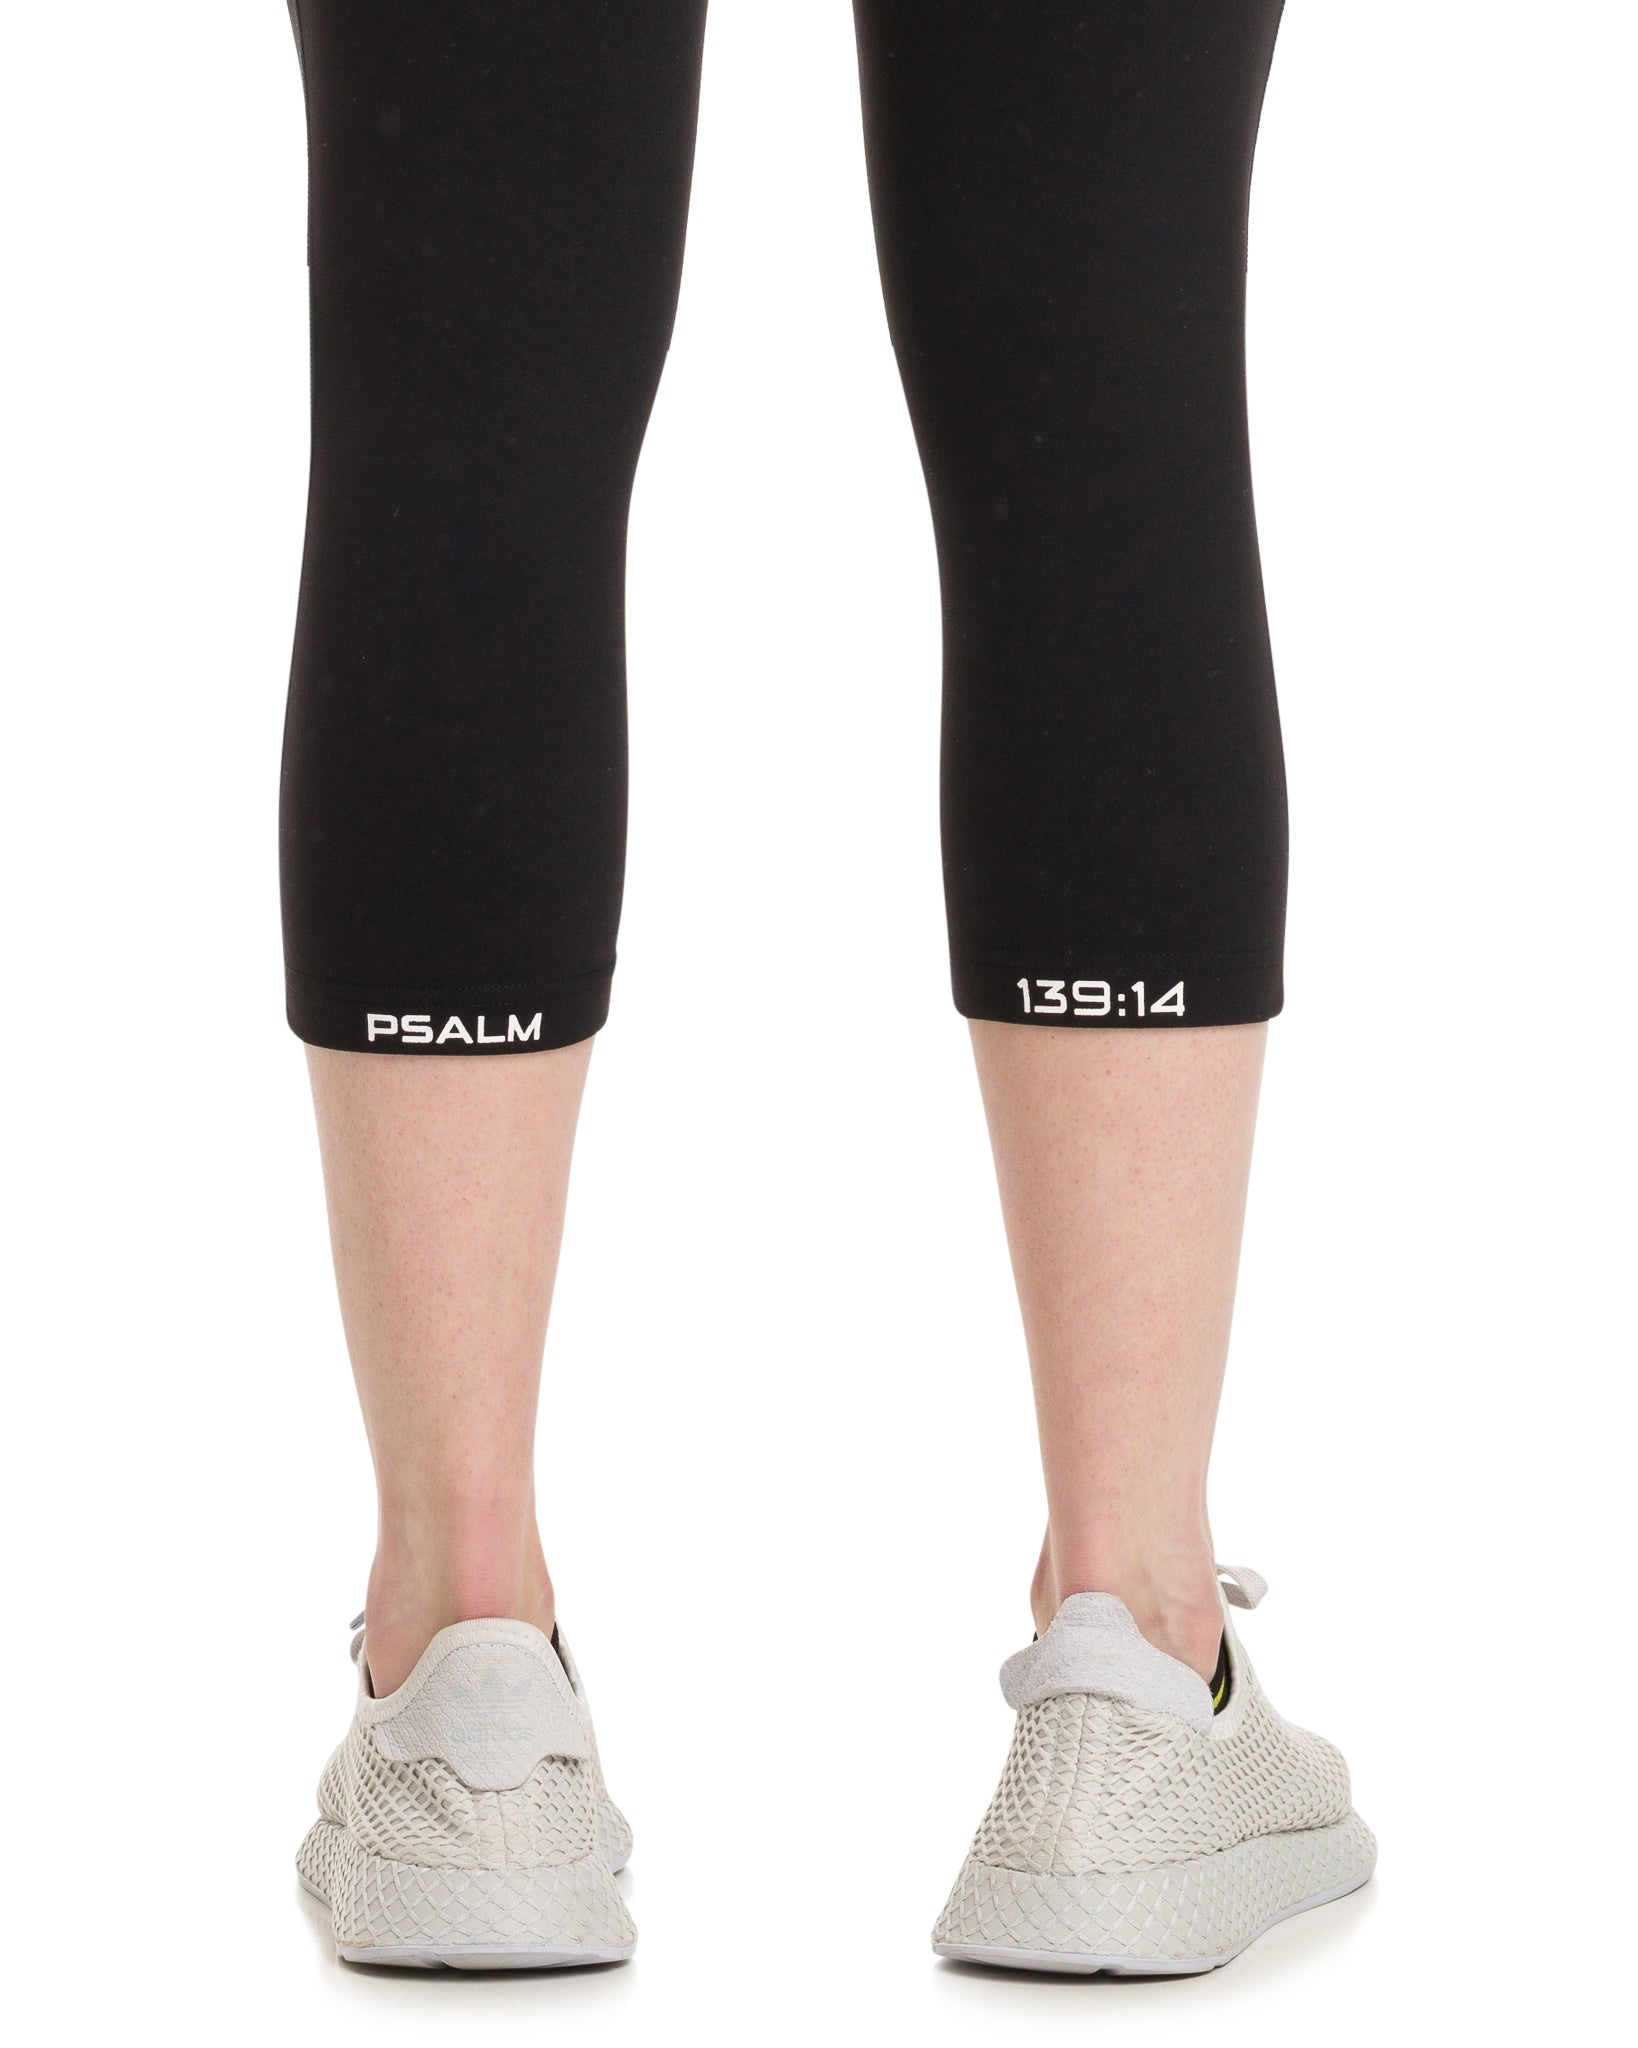 ANGEL Capri Tights Black/White